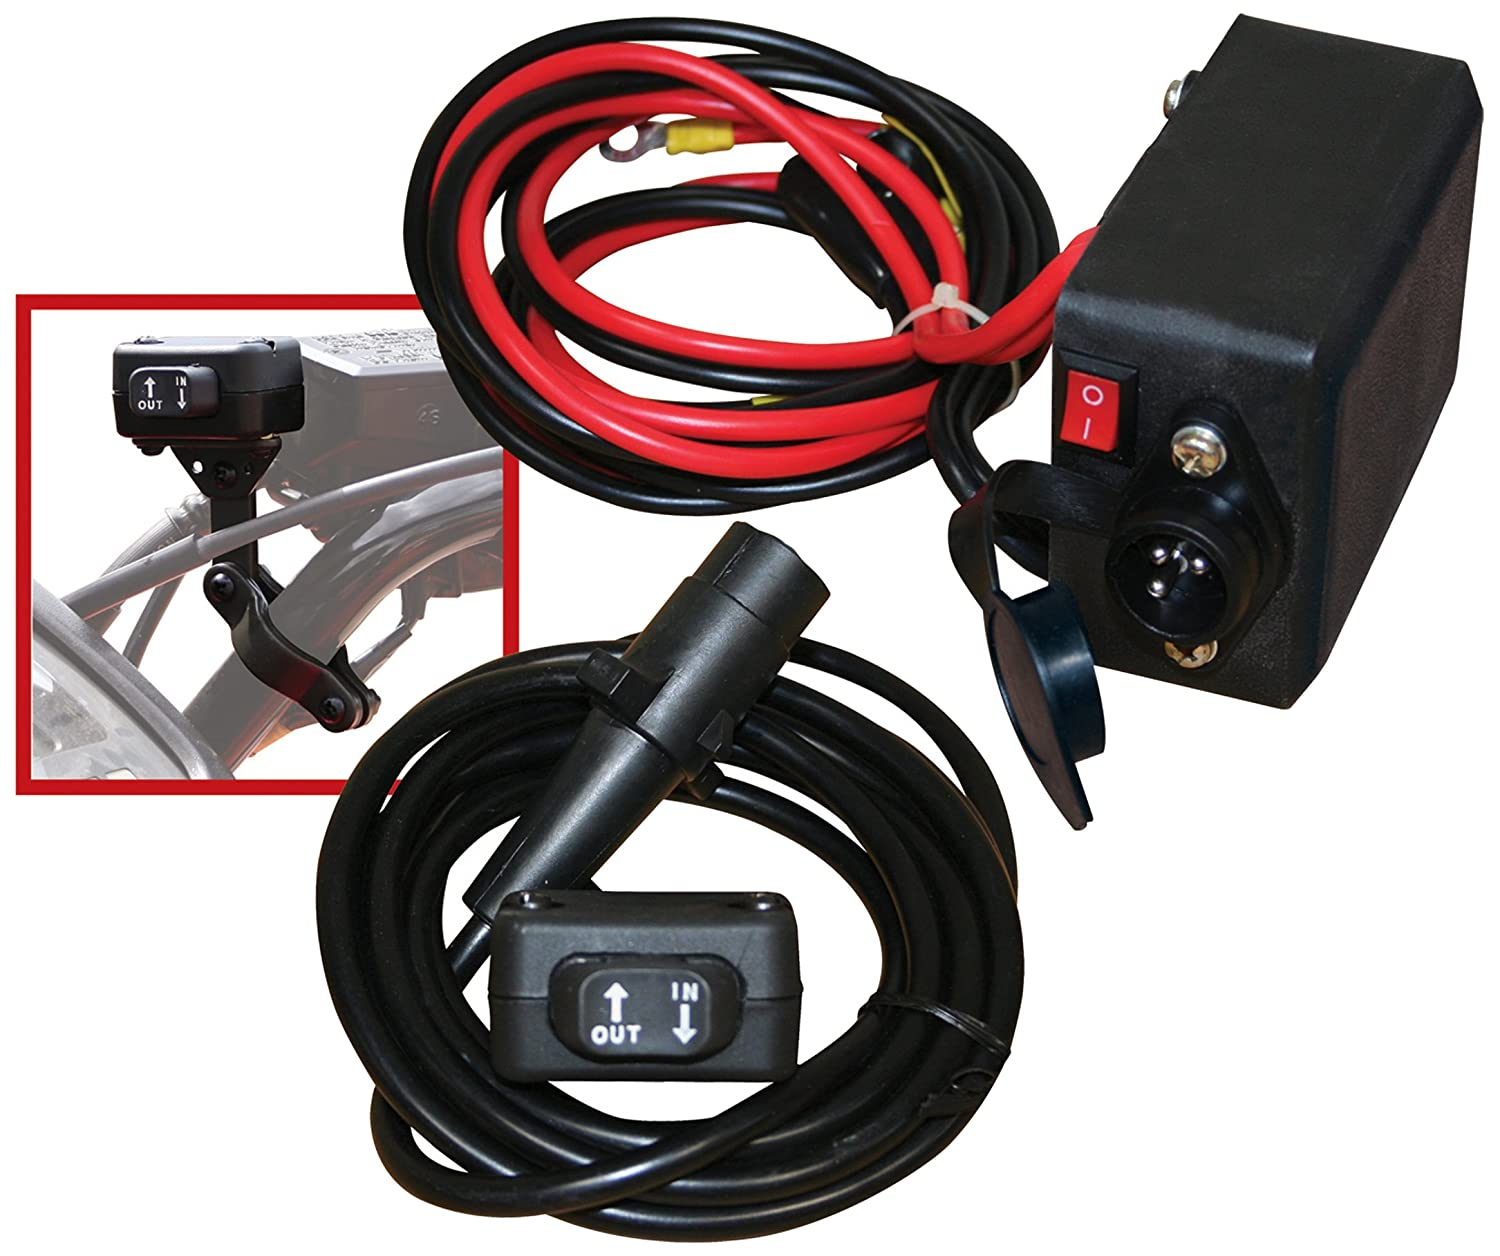 81vTrdhiaQL._SL1500_ amazon com champion mini rocker switch winch remote control kit champion 3000 lb winch wiring diagram at soozxer.org